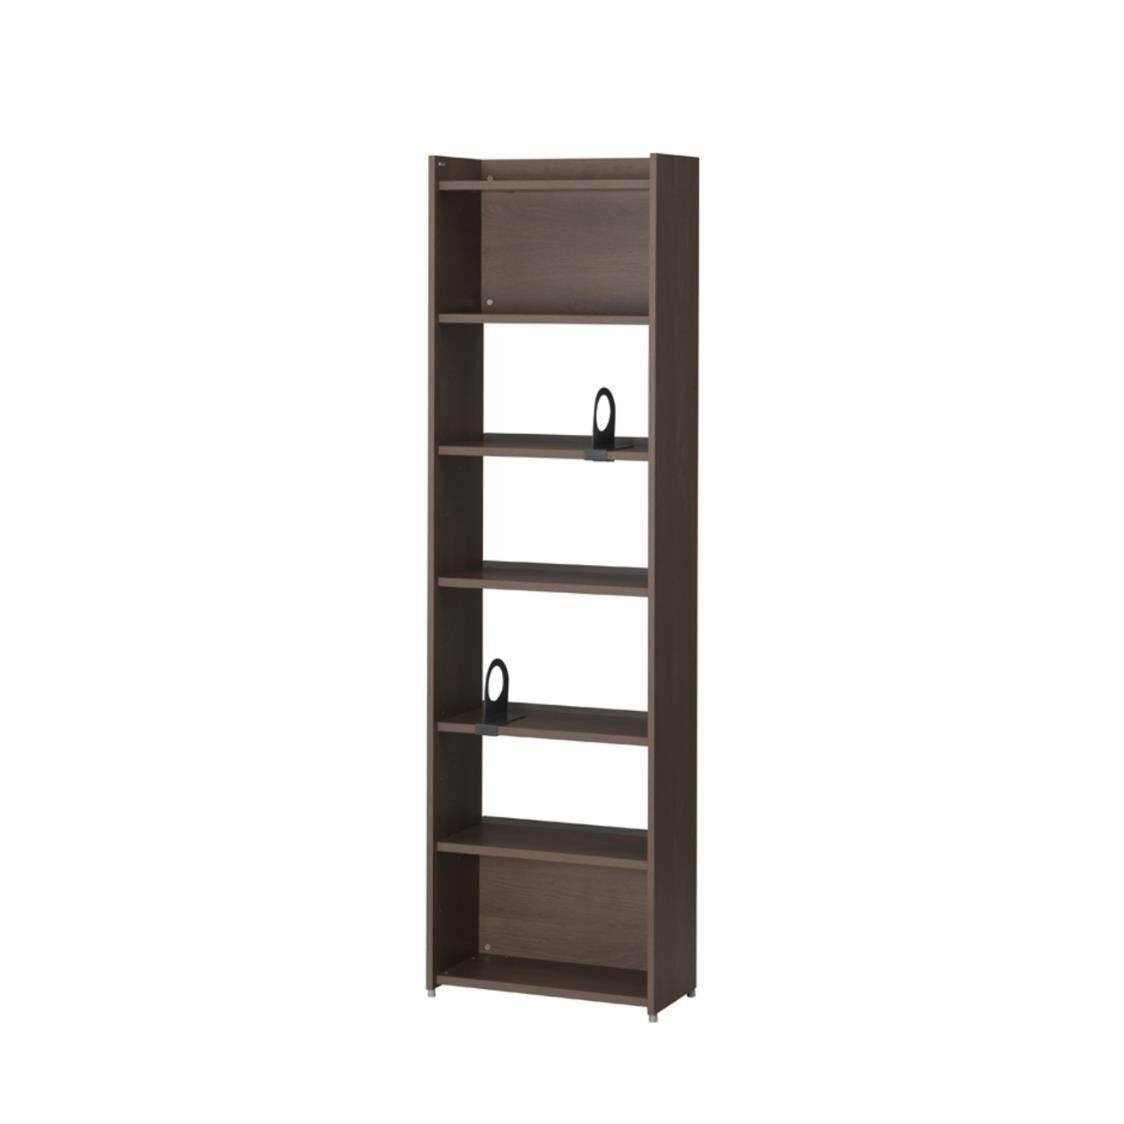 Iloom Ithaca-Neo 600W 7 Level Bookshelf UM